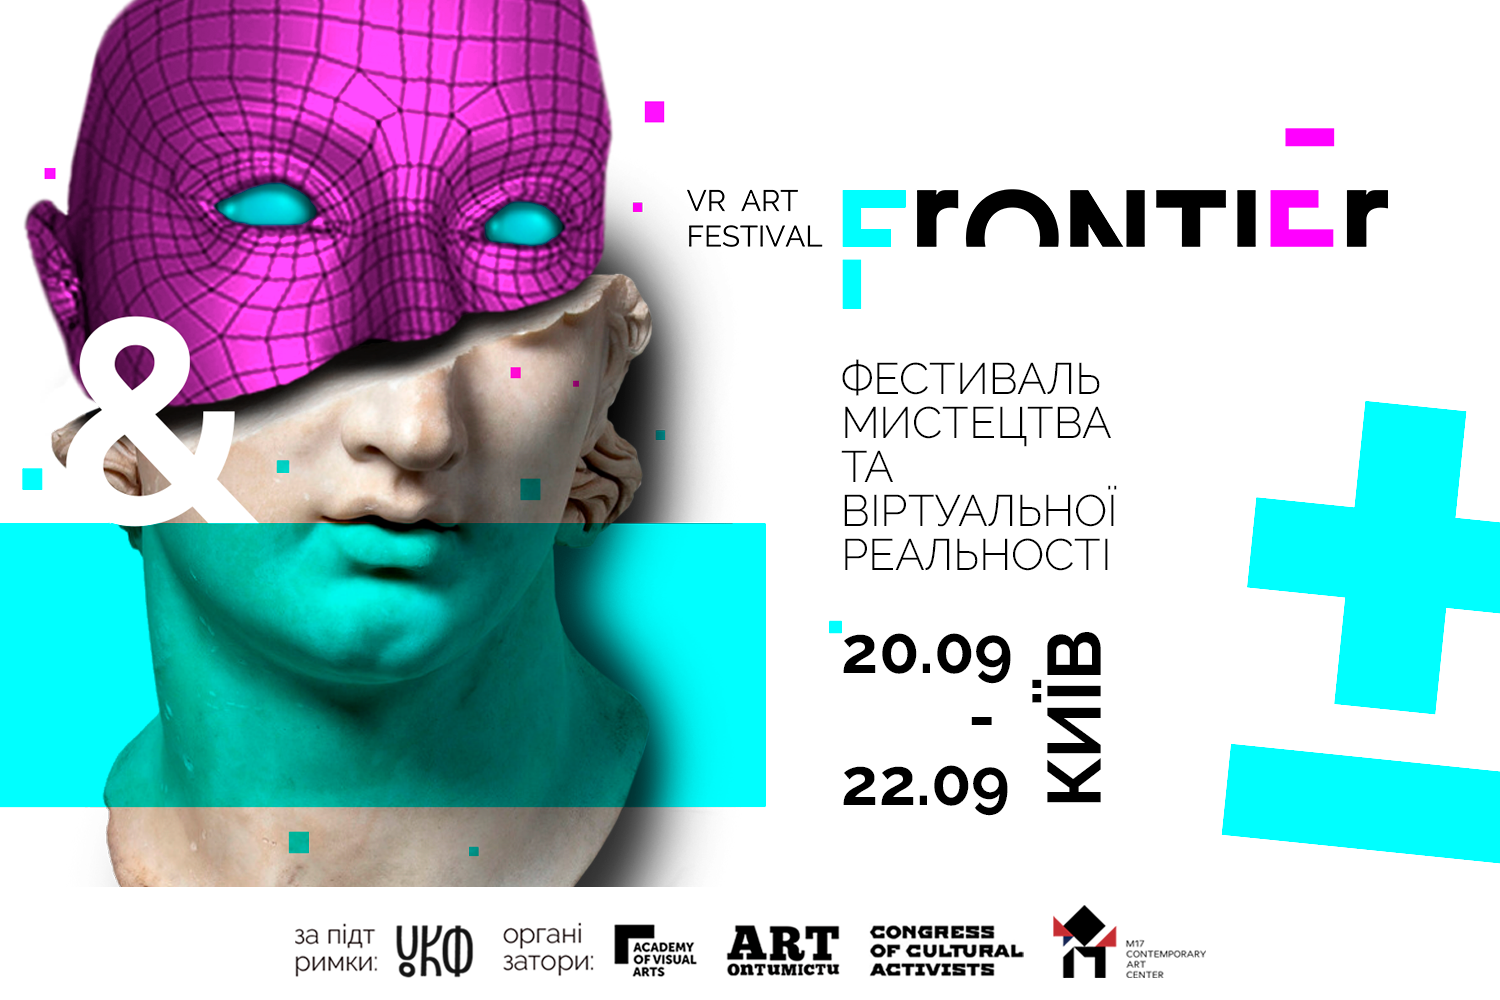 Frontier. VR Art Festival. Kyiv | M17 Contemporary Art Center